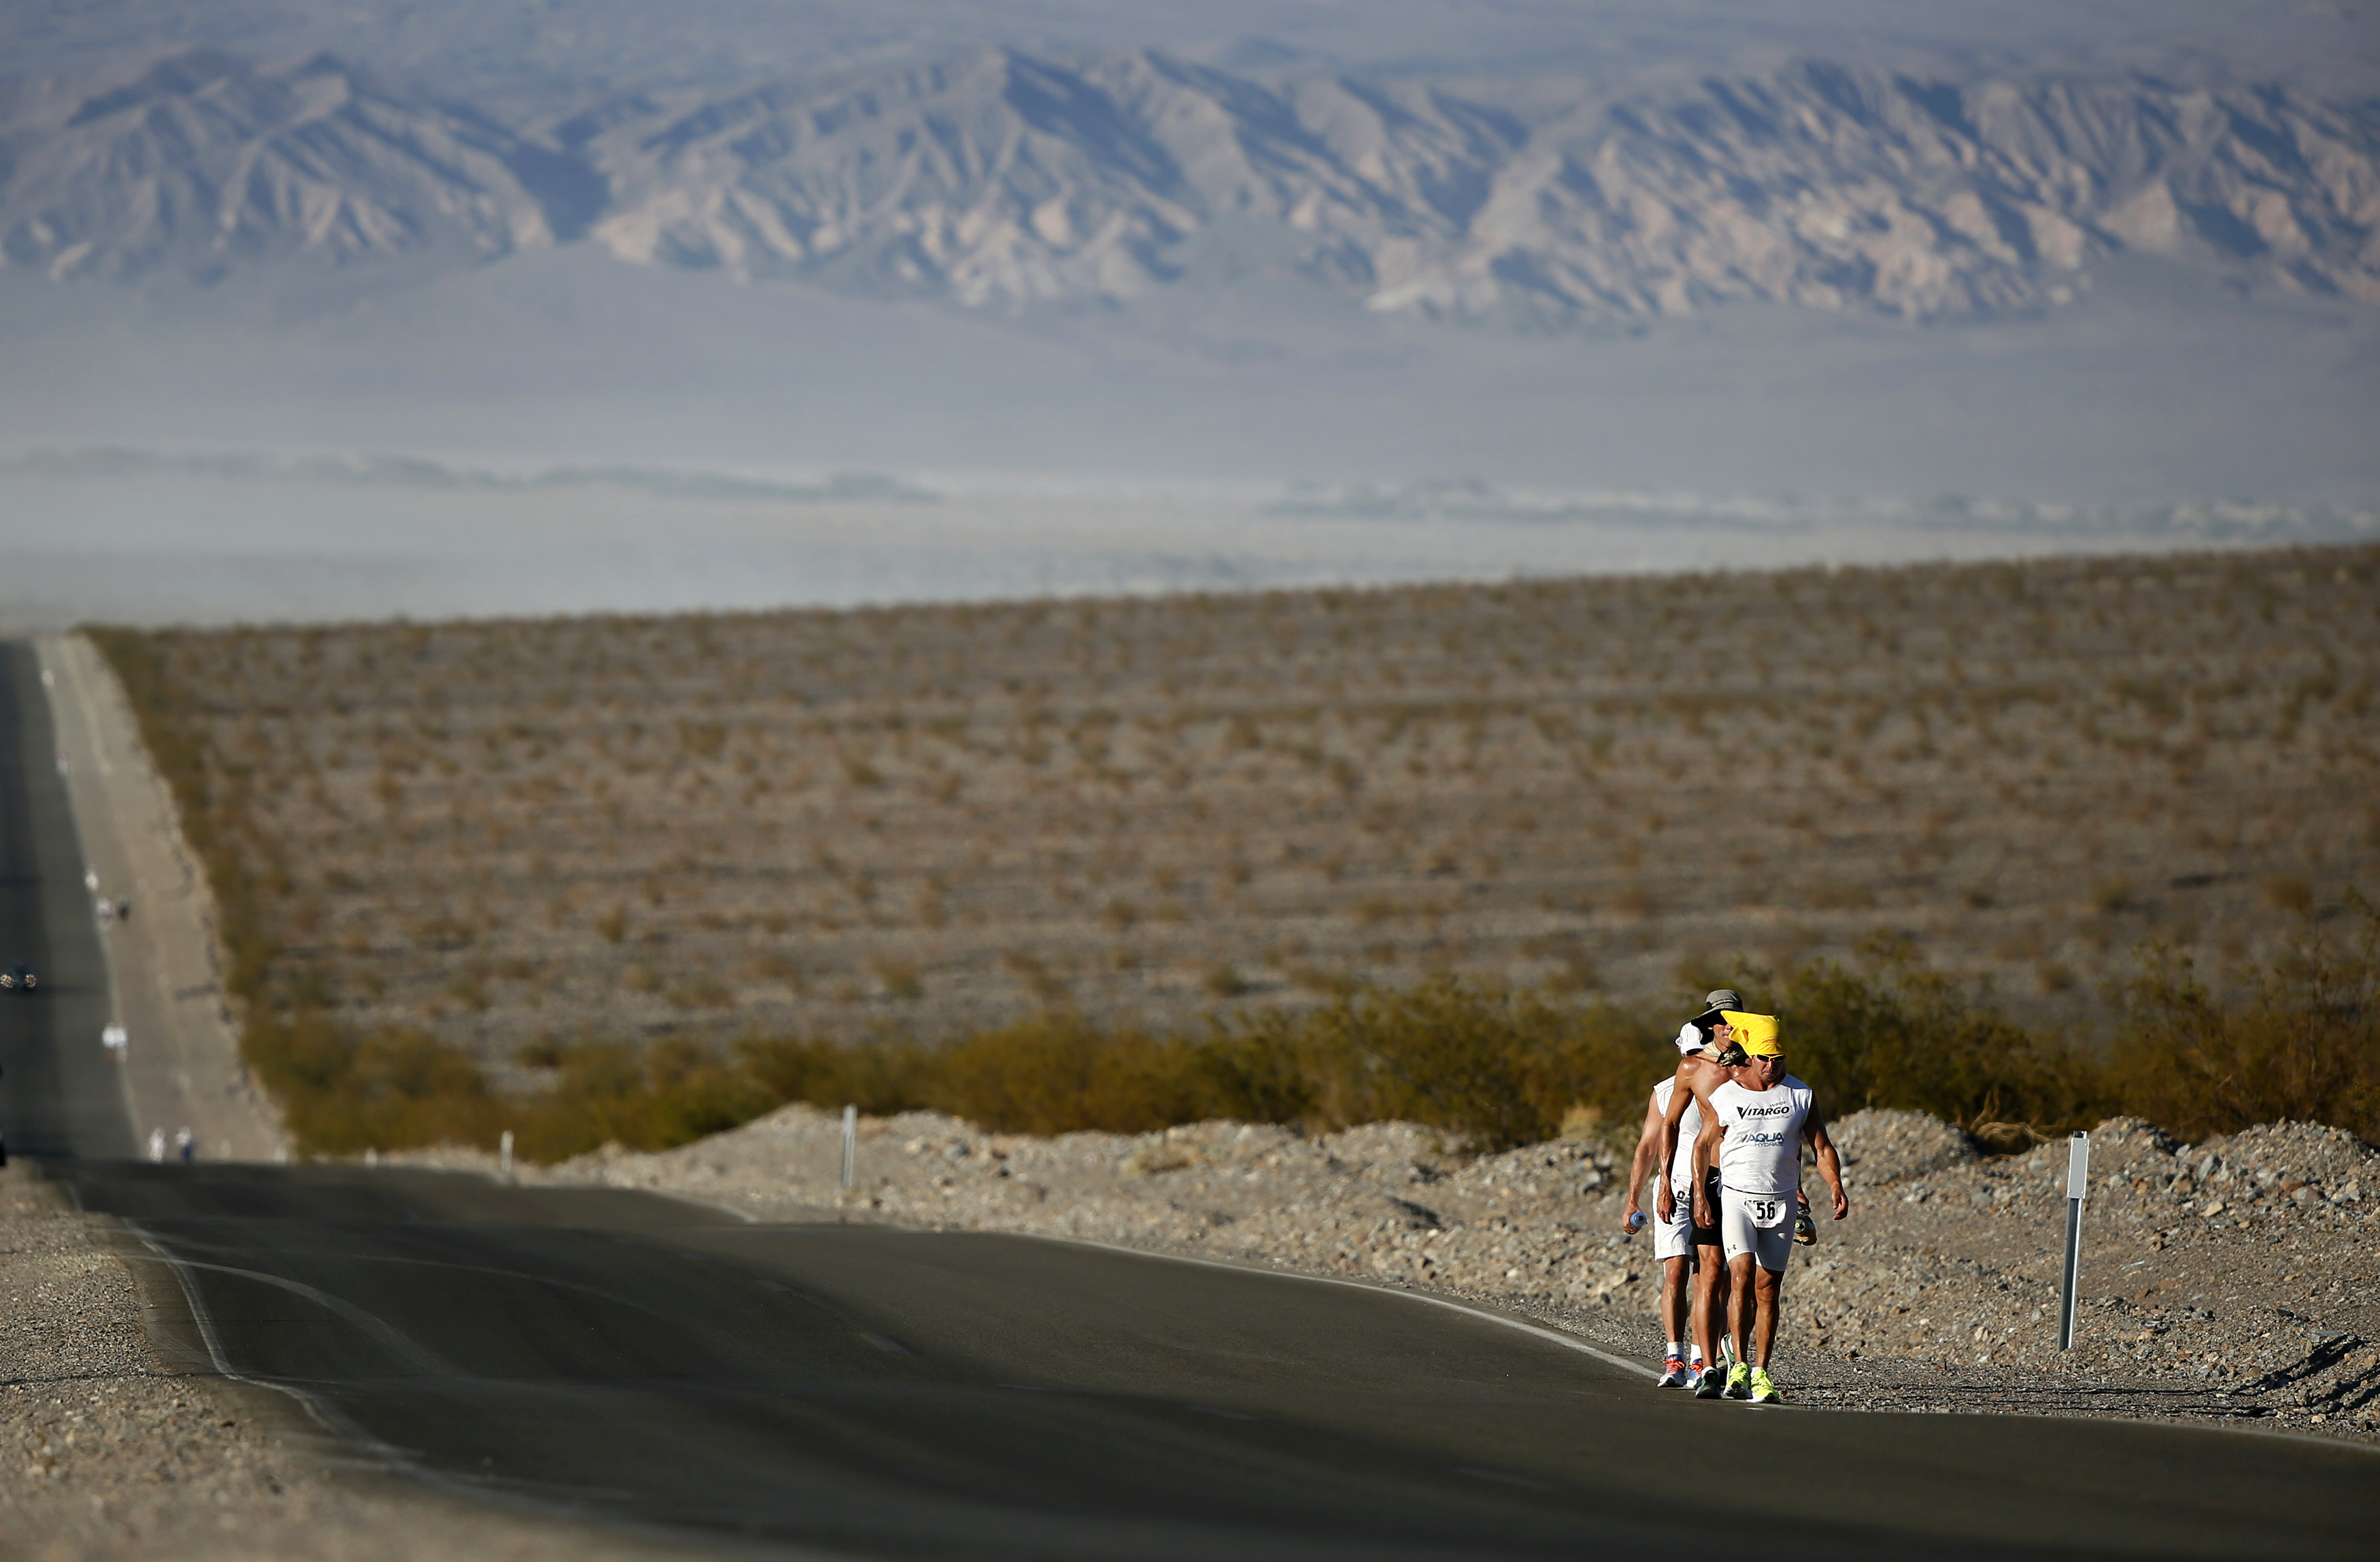 Competitors run in the 2013 Badwater Ultramarathon in Death Valley National Park, California. The 135-mile (217 km) race, which bills itself as the world's ...